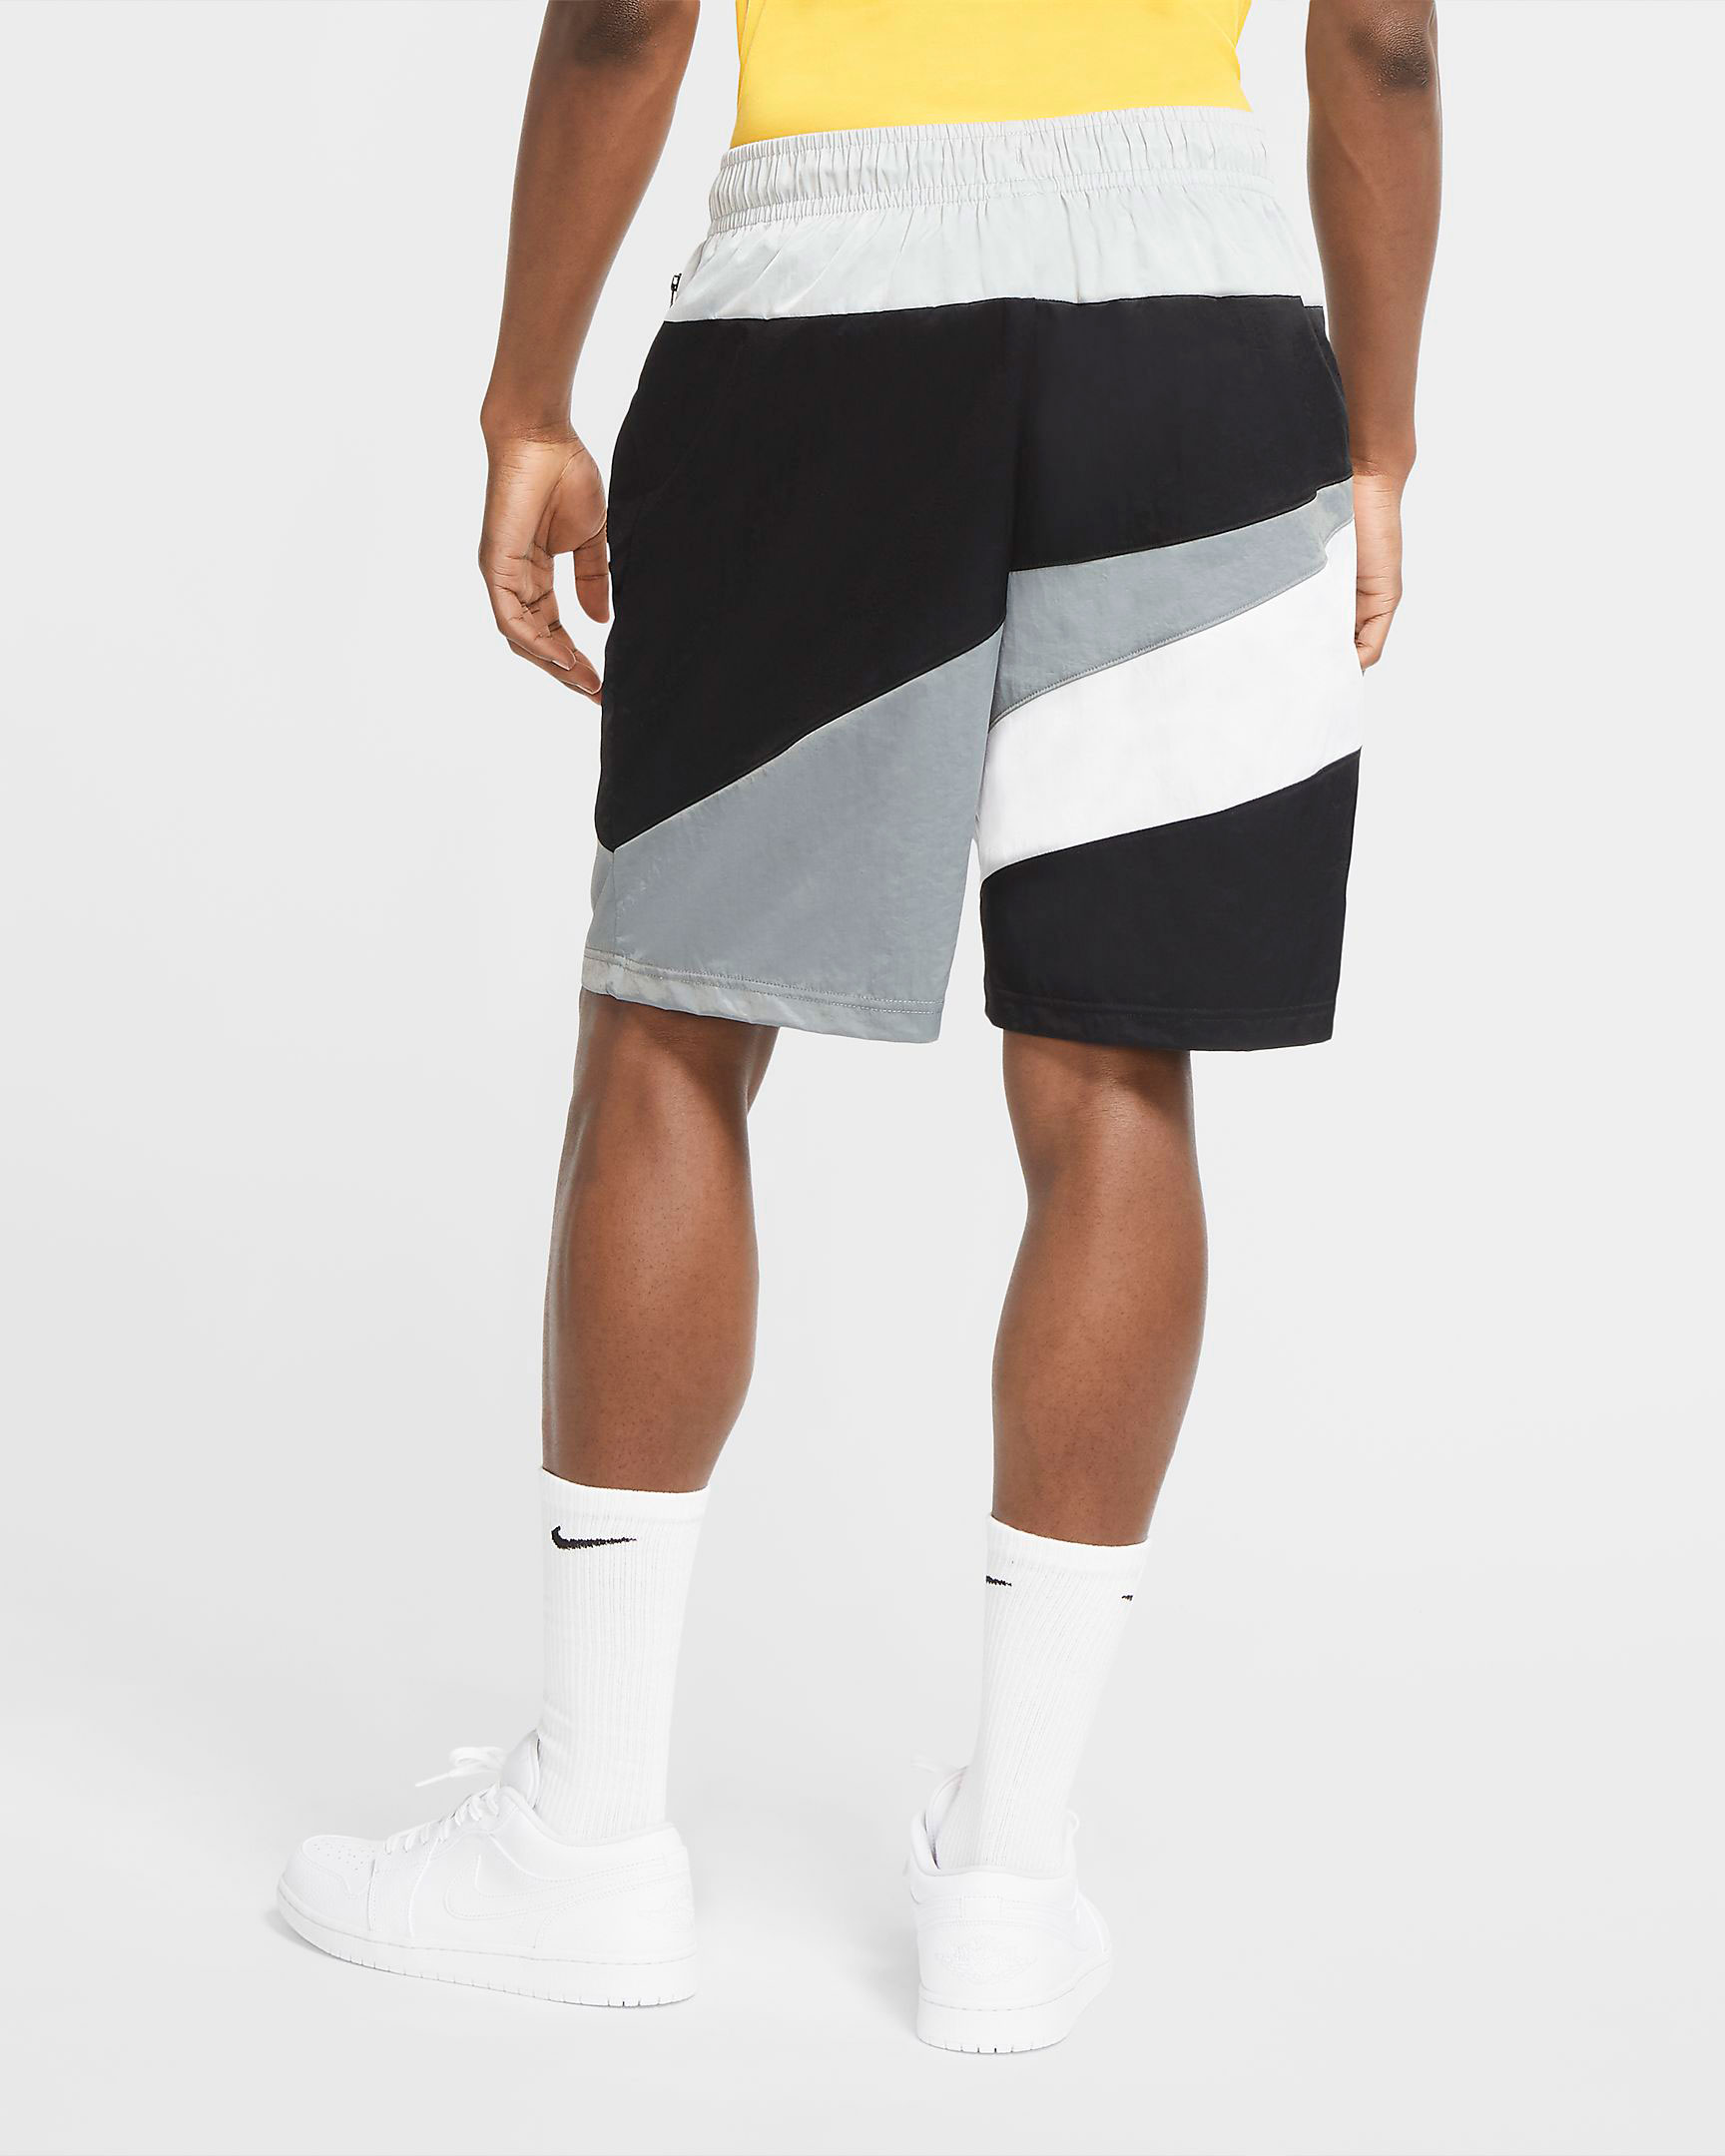 jordan-smoke-grey-wave-shorts-2